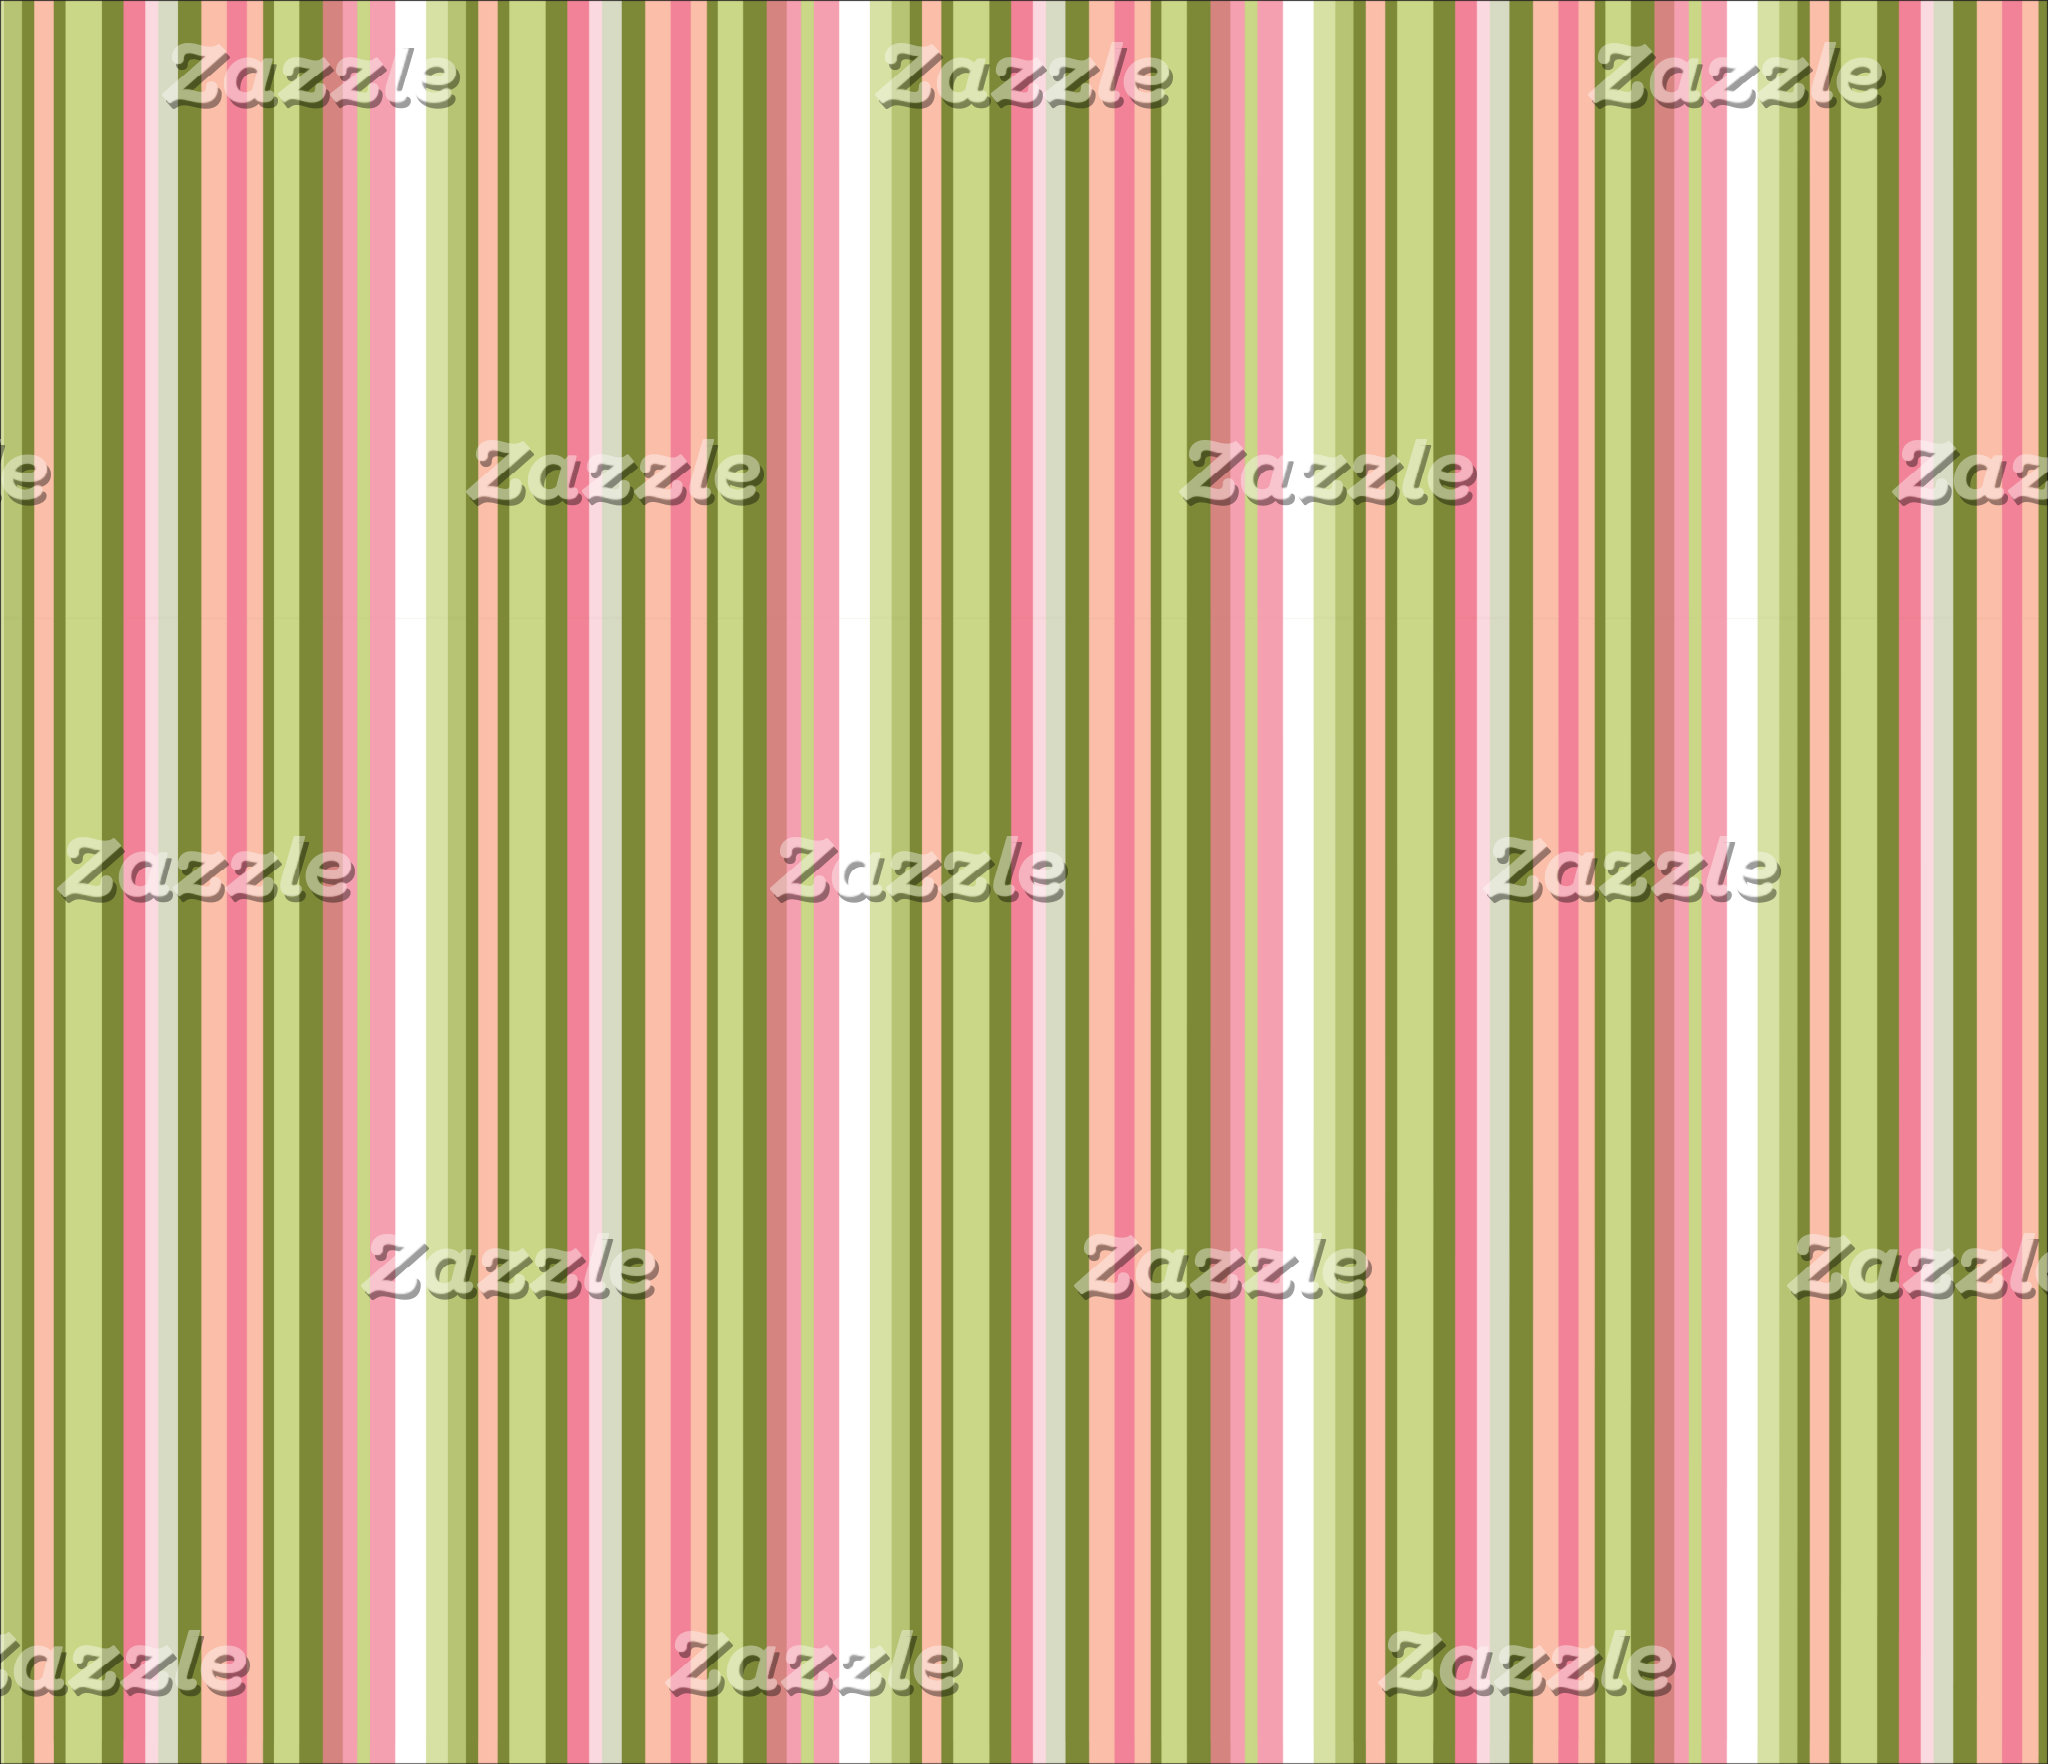 Pink and Green Designs